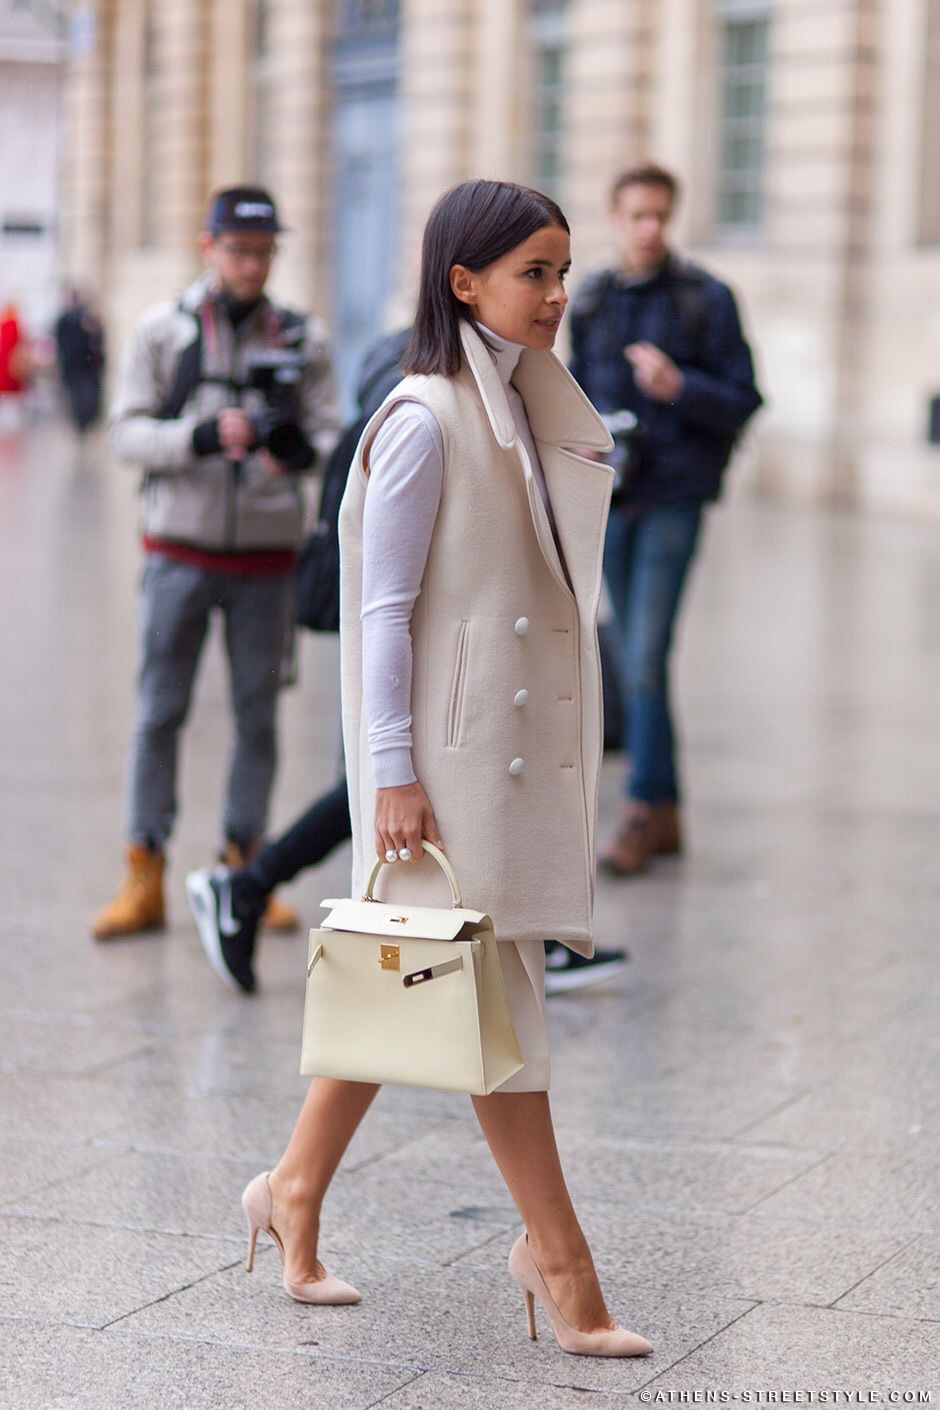 Shades of white. This is such a classy look and paired with nude colored heels. (Image Source: Athens-streetstyle.com)